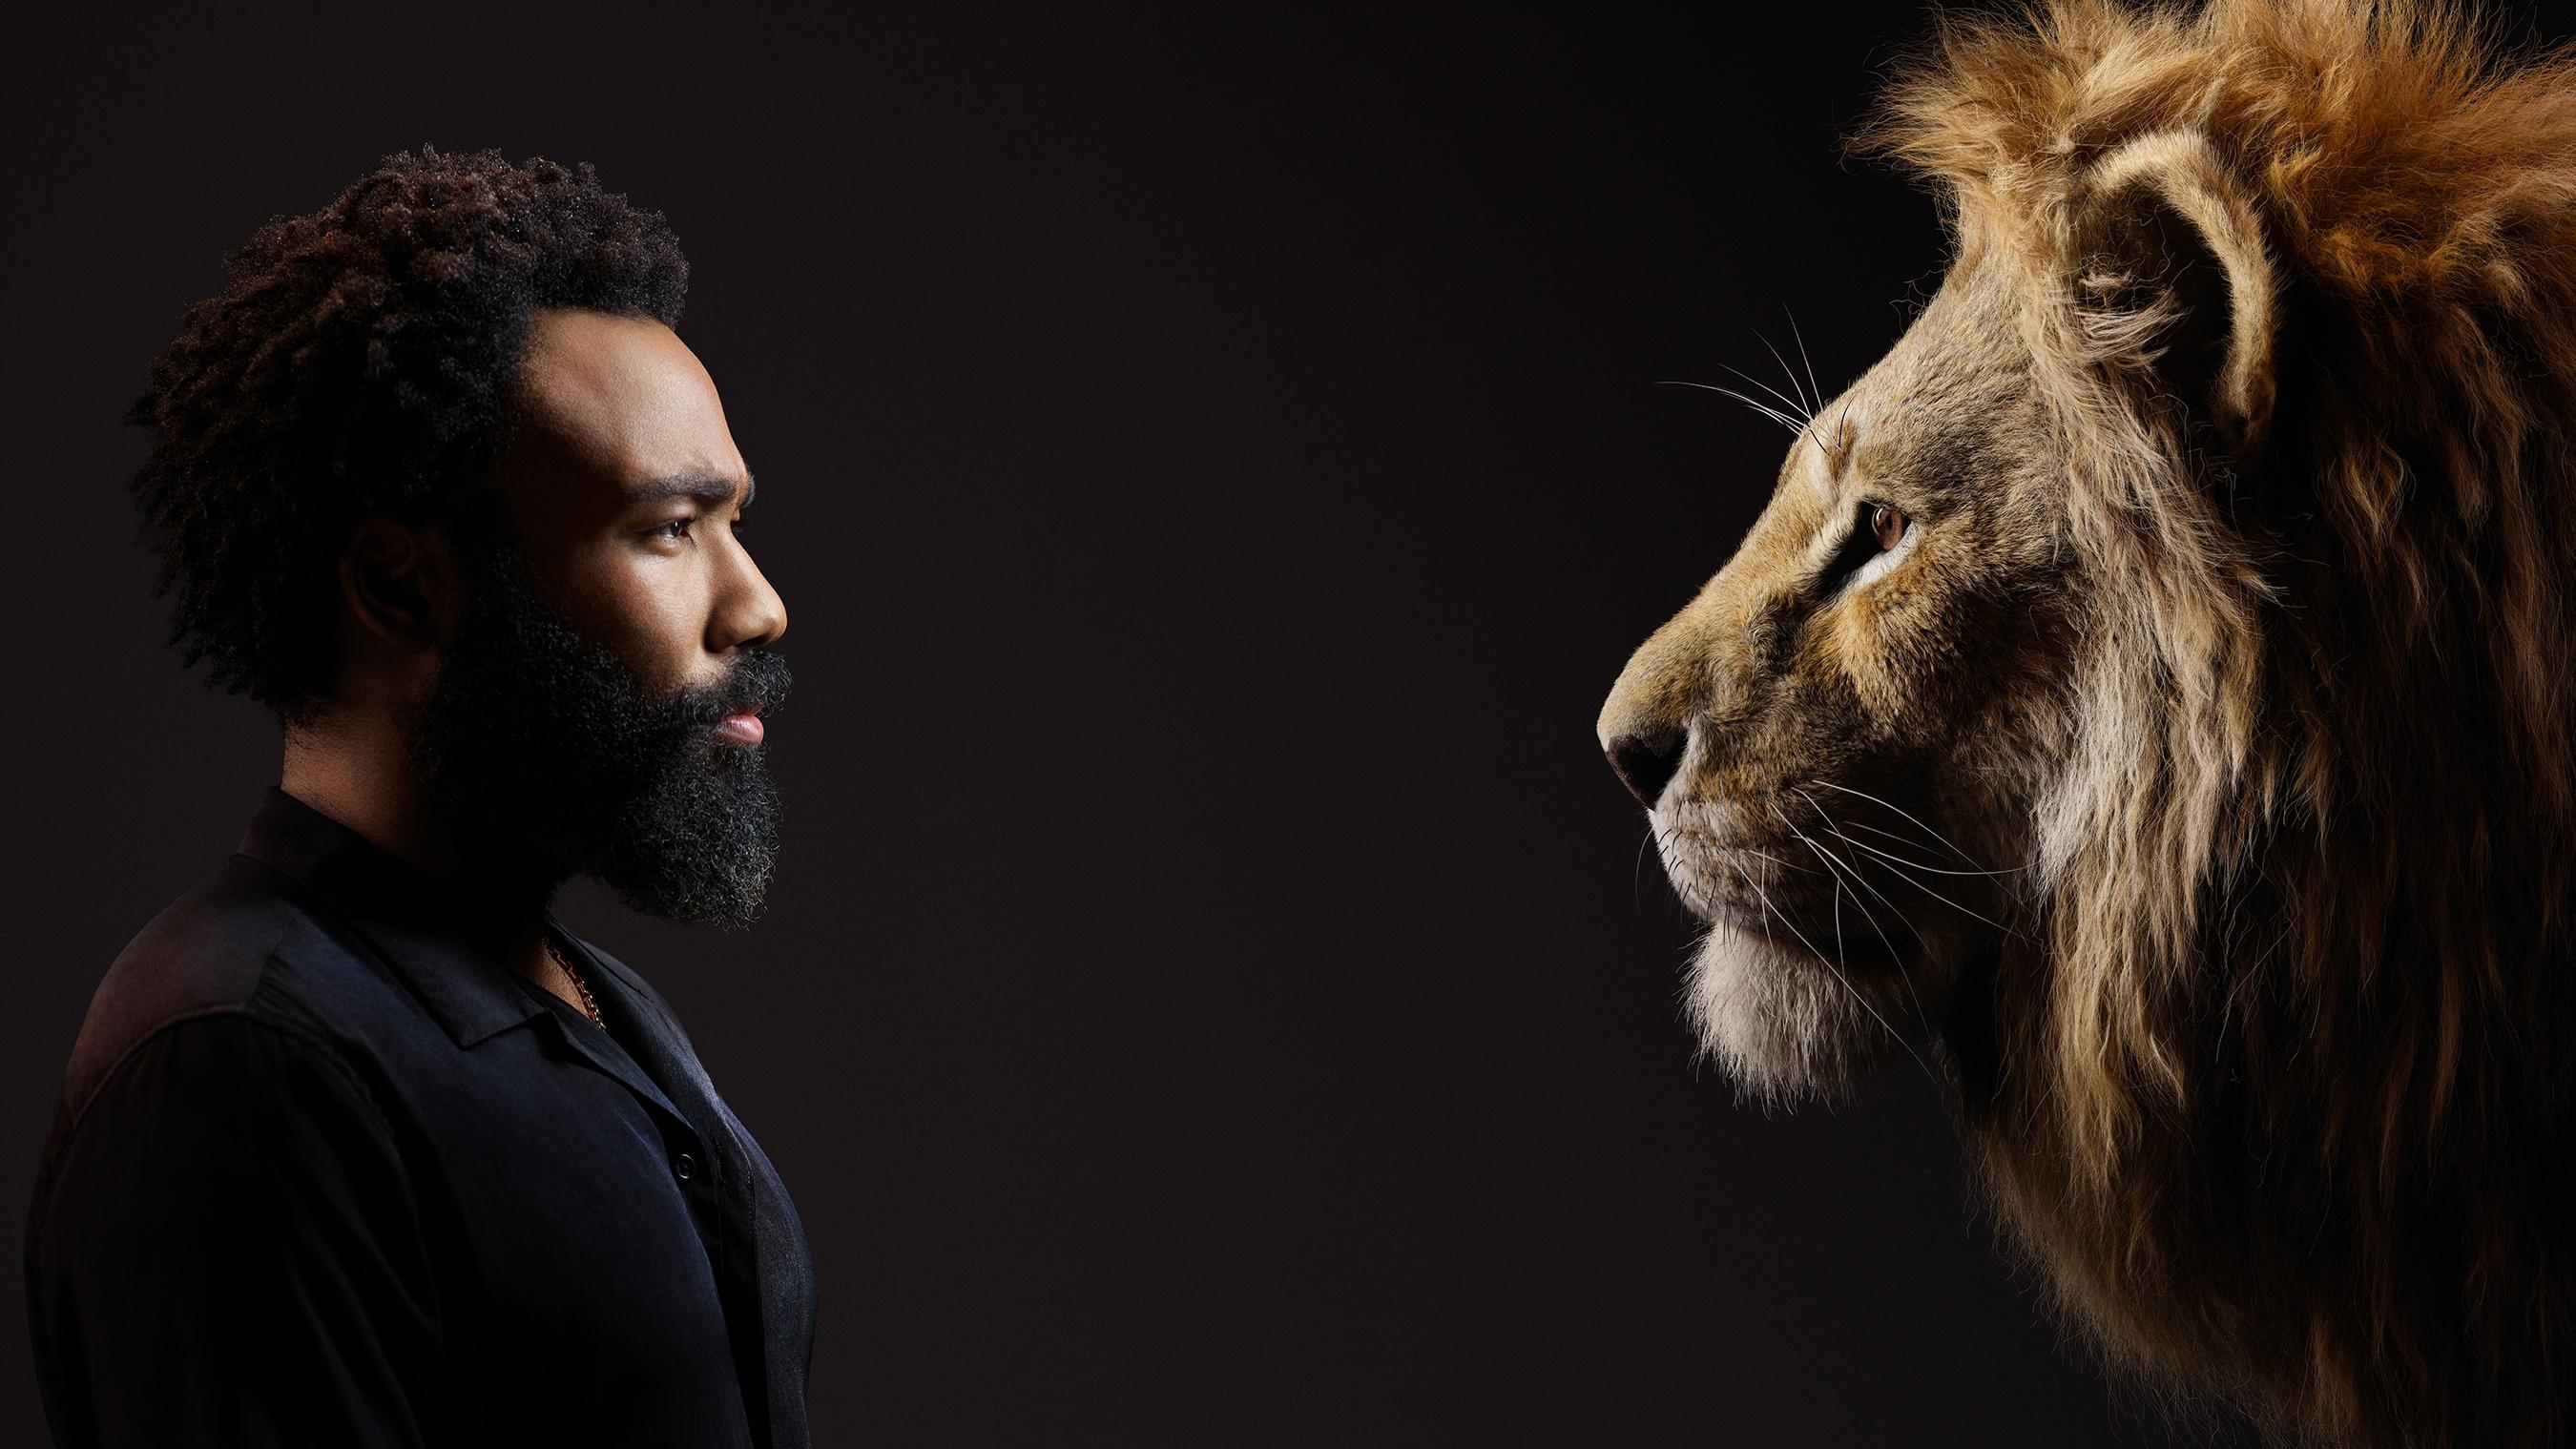 Donald Glover As Simba The Lion King 2019 Hd Movies 4k Wallpapers Images Backgrounds Photos And Pictures